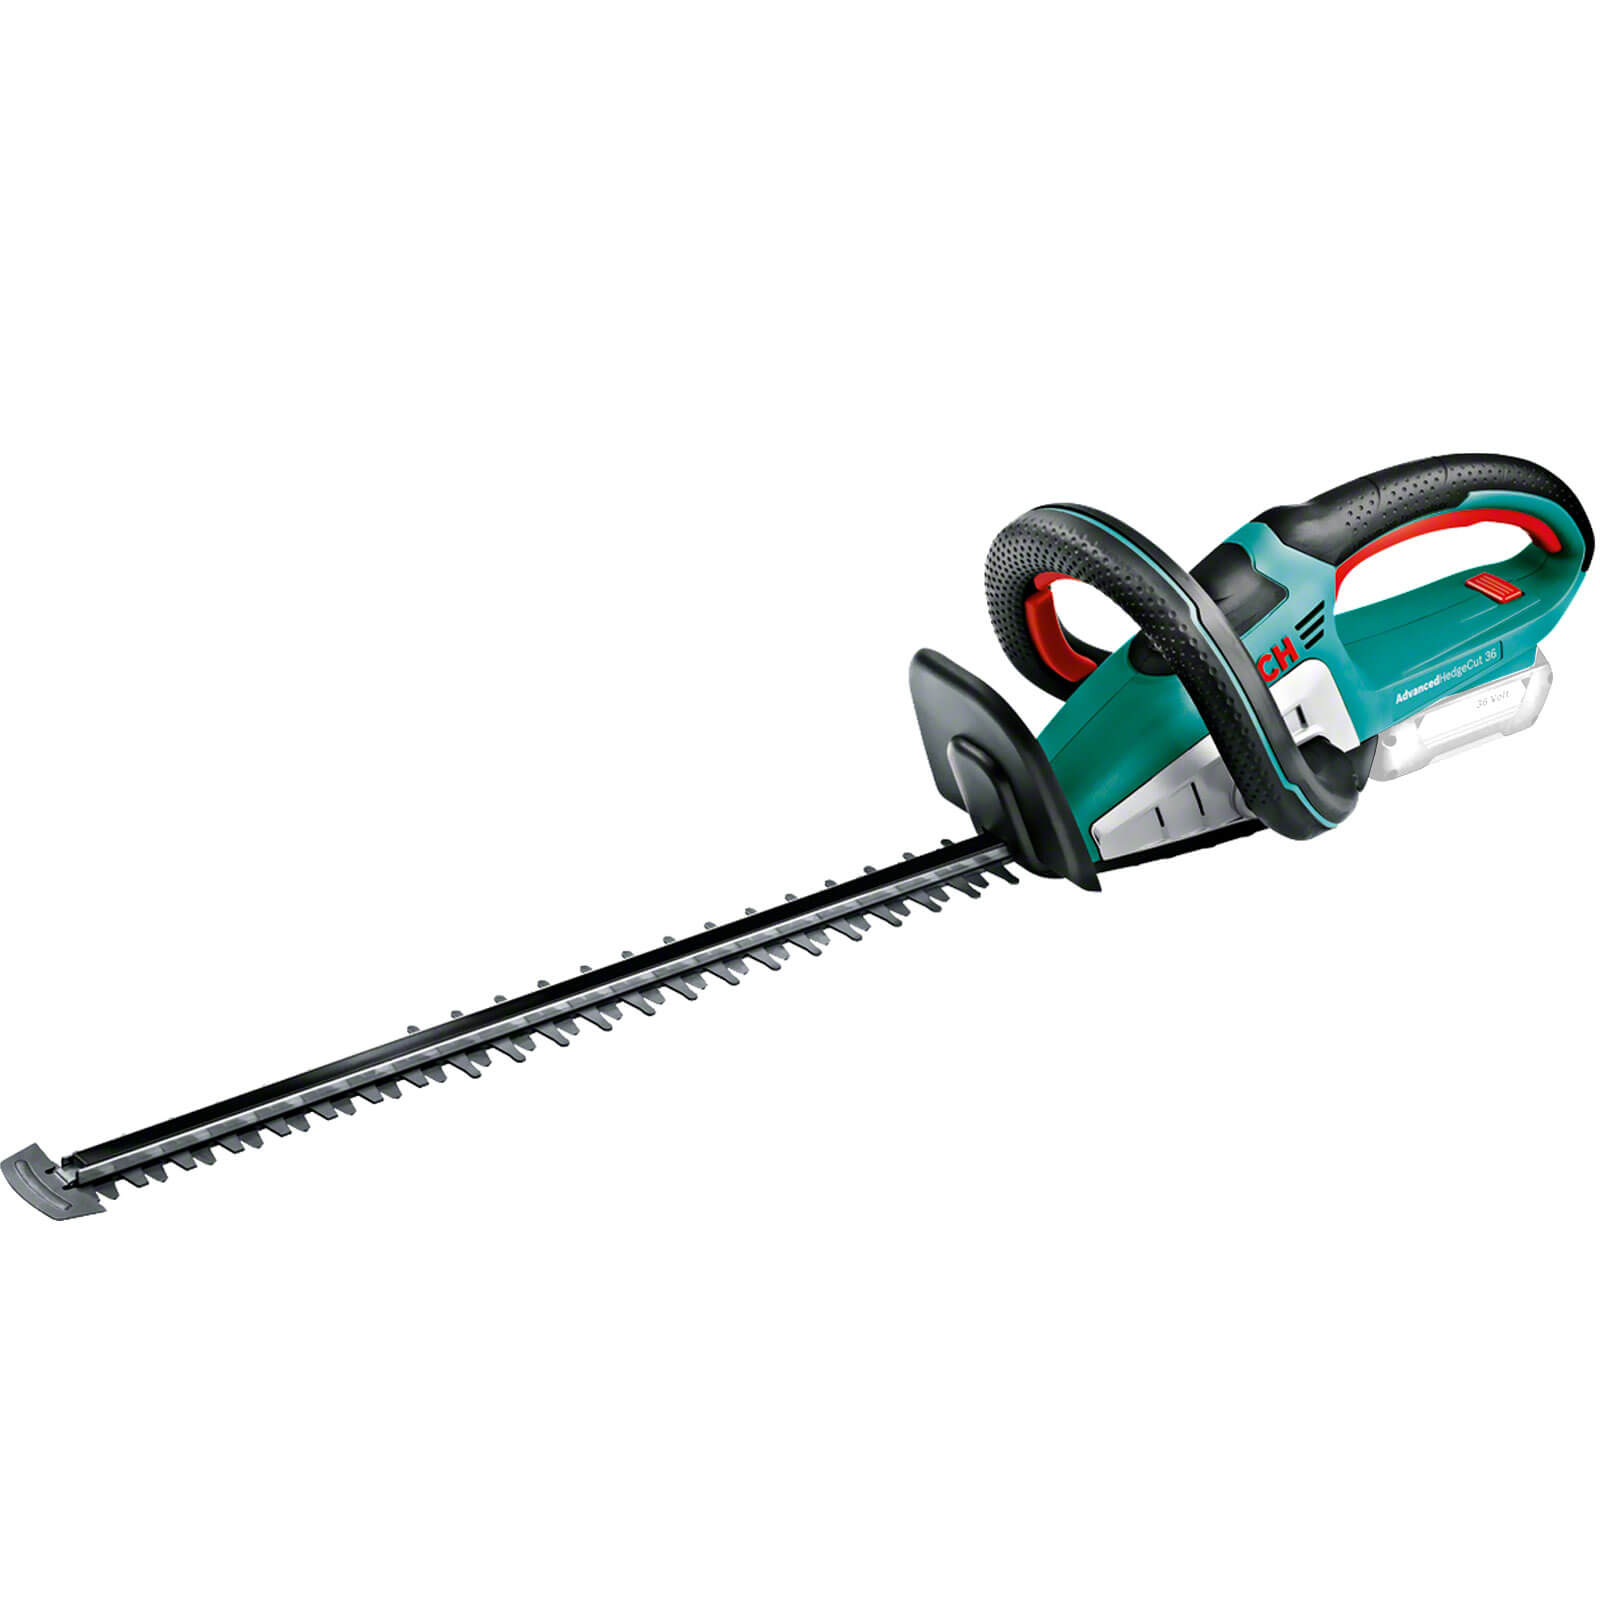 Image of Bosch ADVANCEDHEDGECUT 36v Cordless Hedge Trimmer 540mm No Batteries No Charger